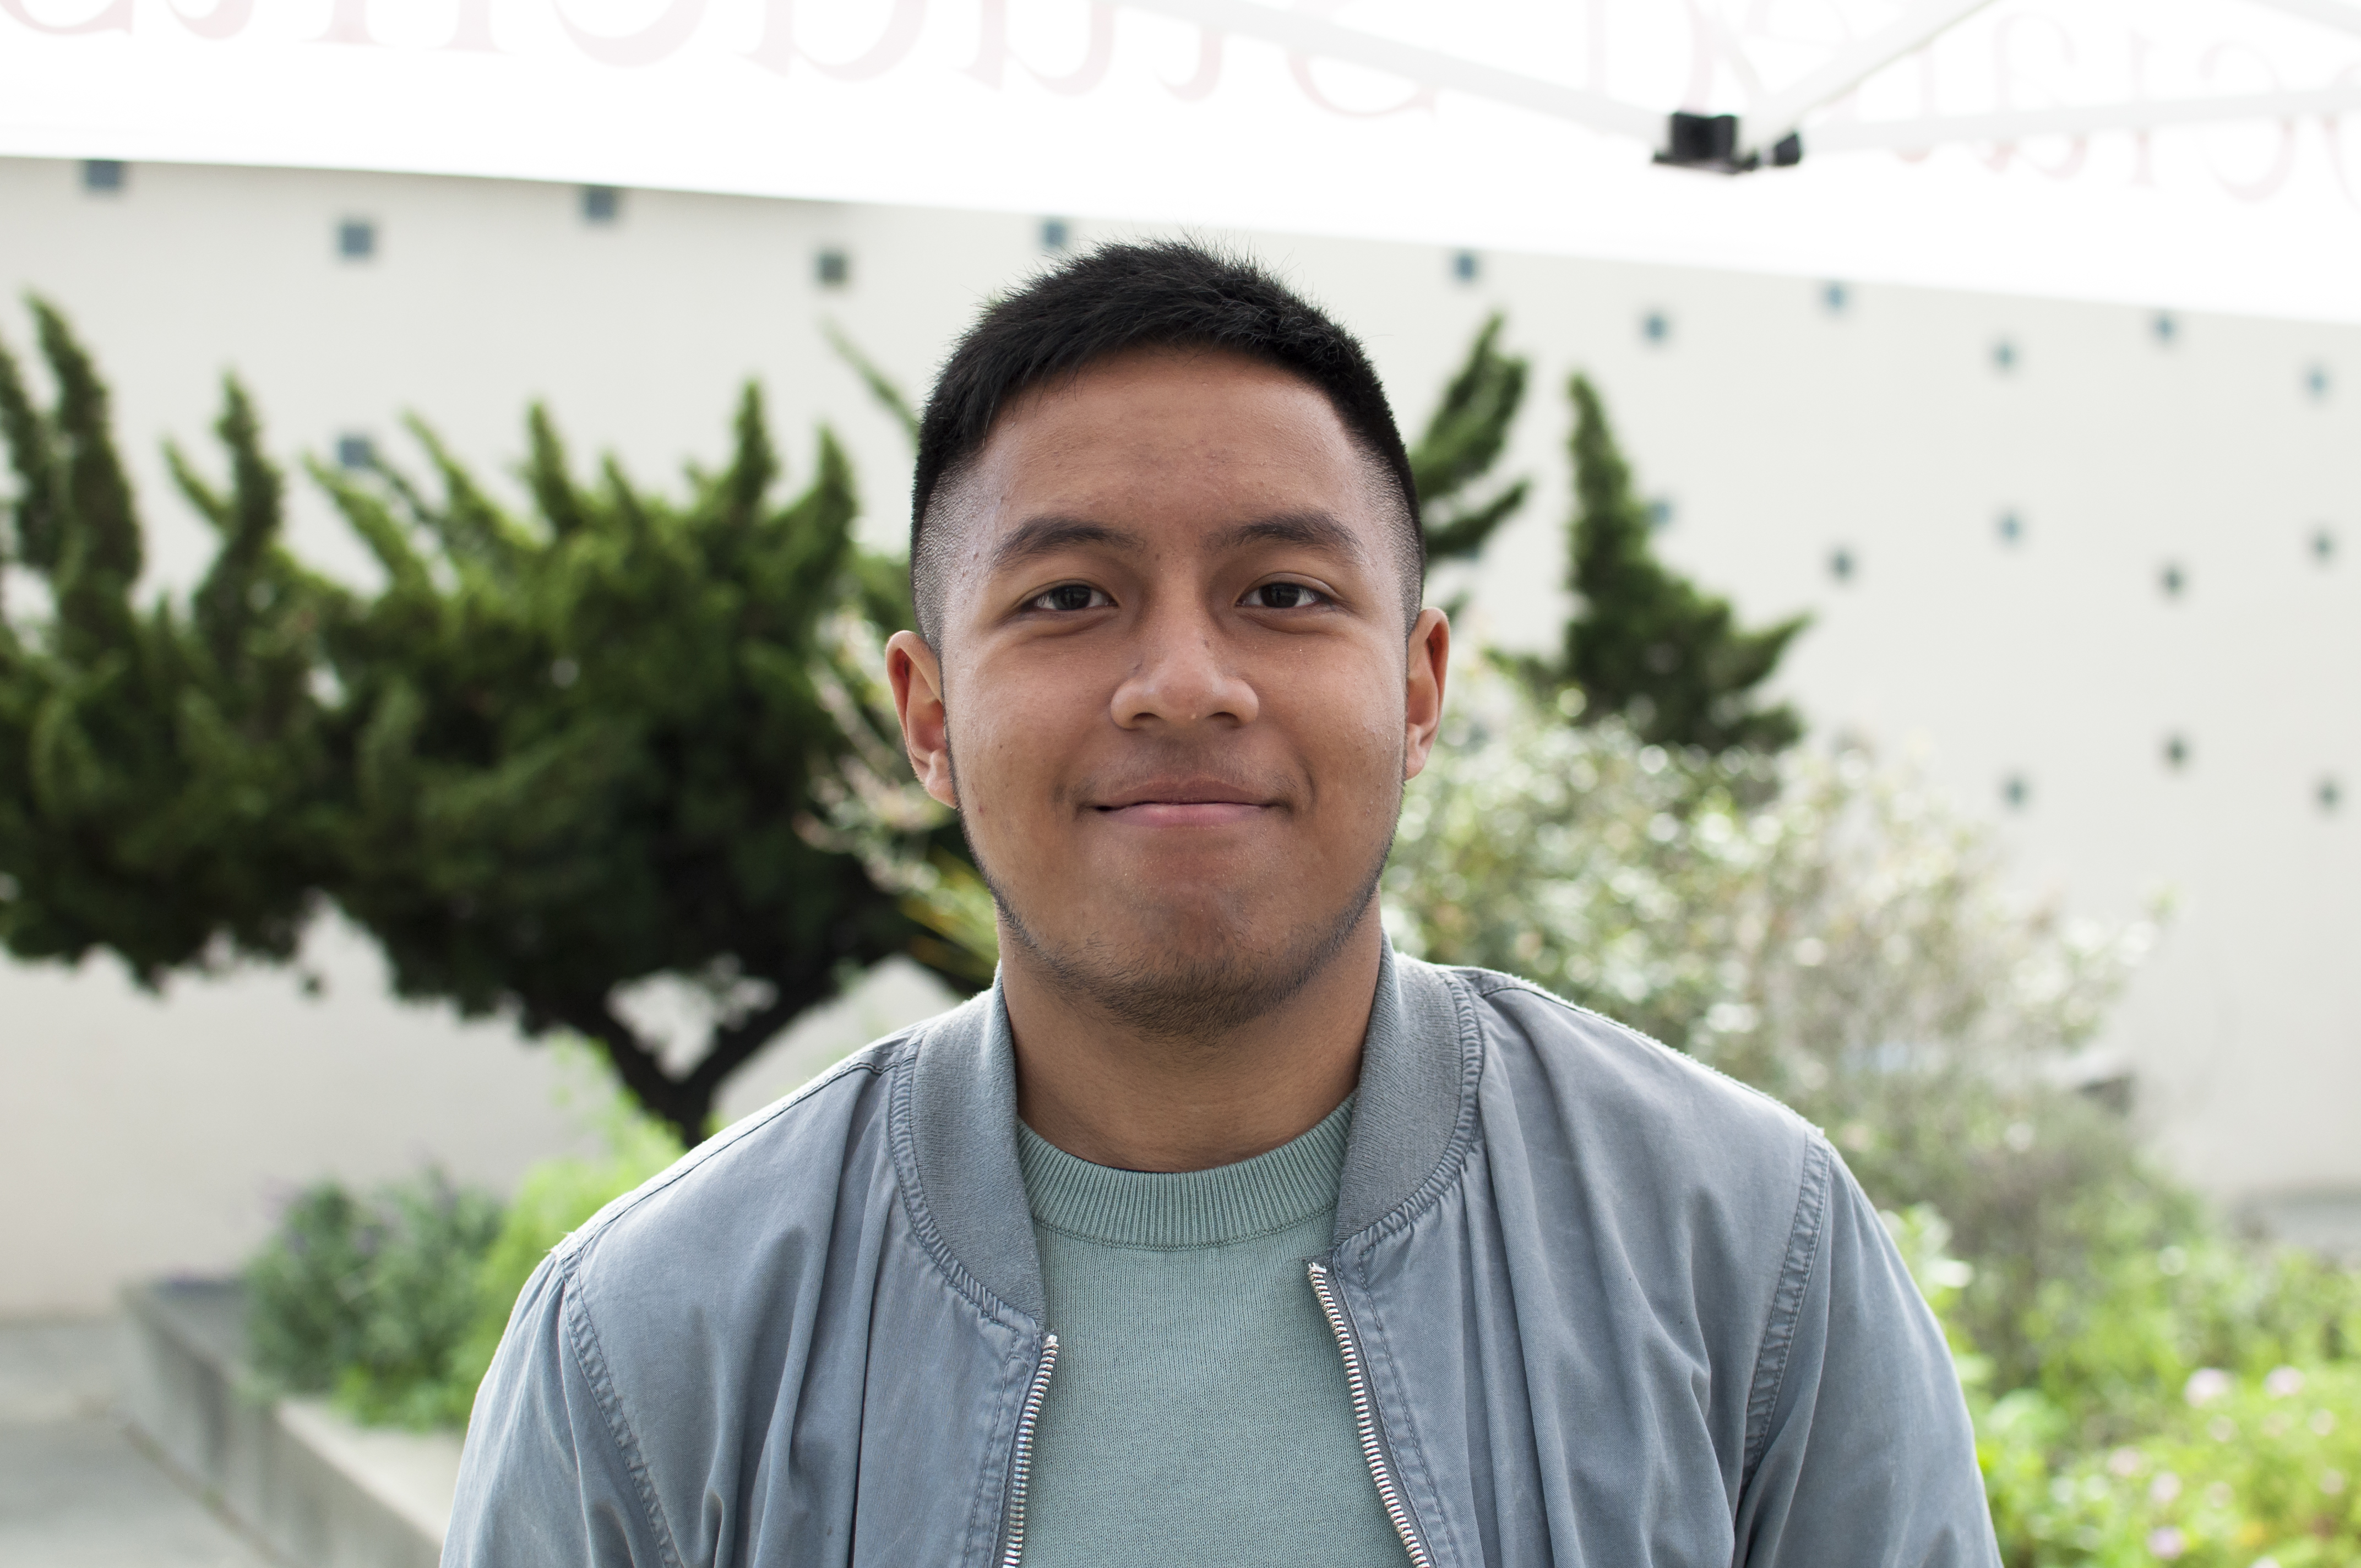 """It's a cheaper alternative than going straight to university from high school. I chose this school specifically because I like the city, the environment and I have some family living here. There's also a lot of students that come from my country, Indonesia."" -Raafi Laksana Business Administration, Sophomore"